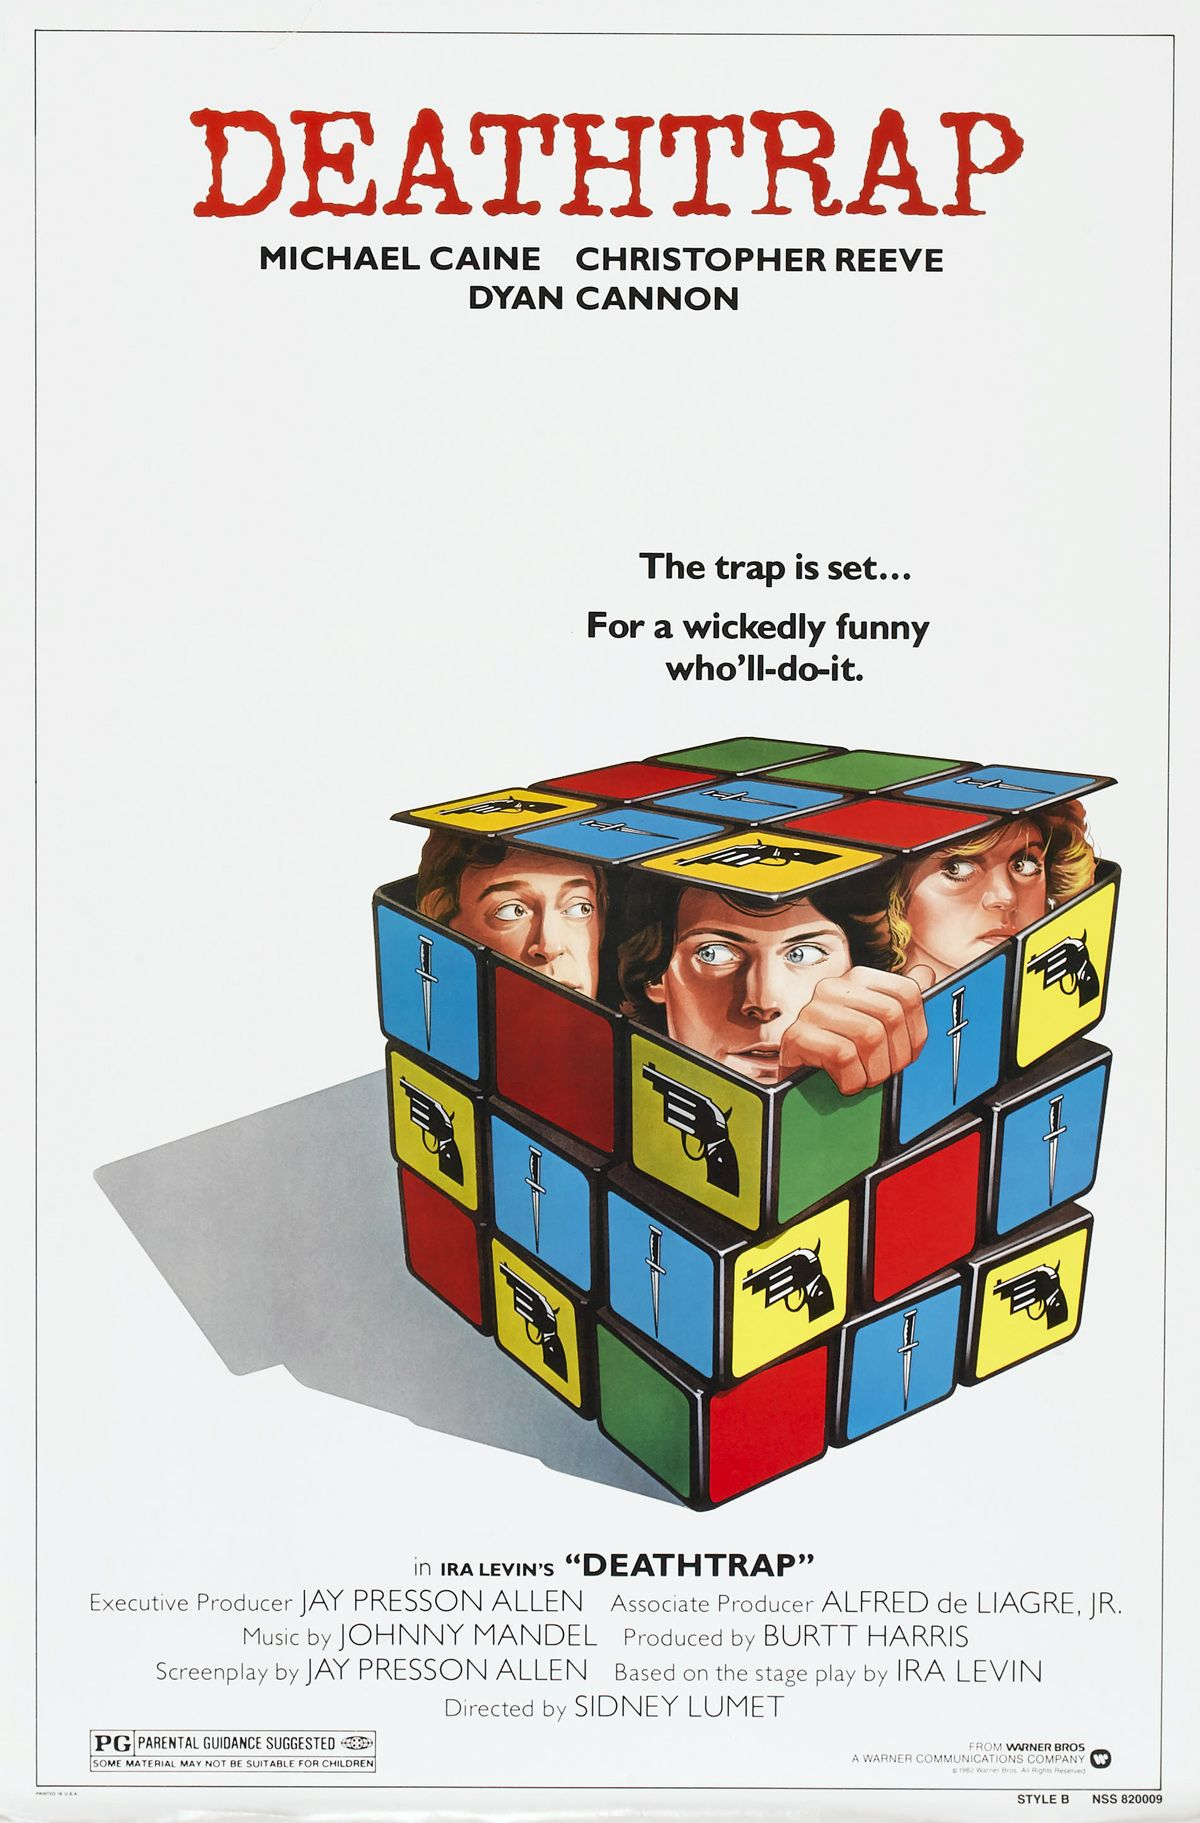 Original release one-sheet movie poster for the movie Deathtrap (1982) directed by Sidney Lumet